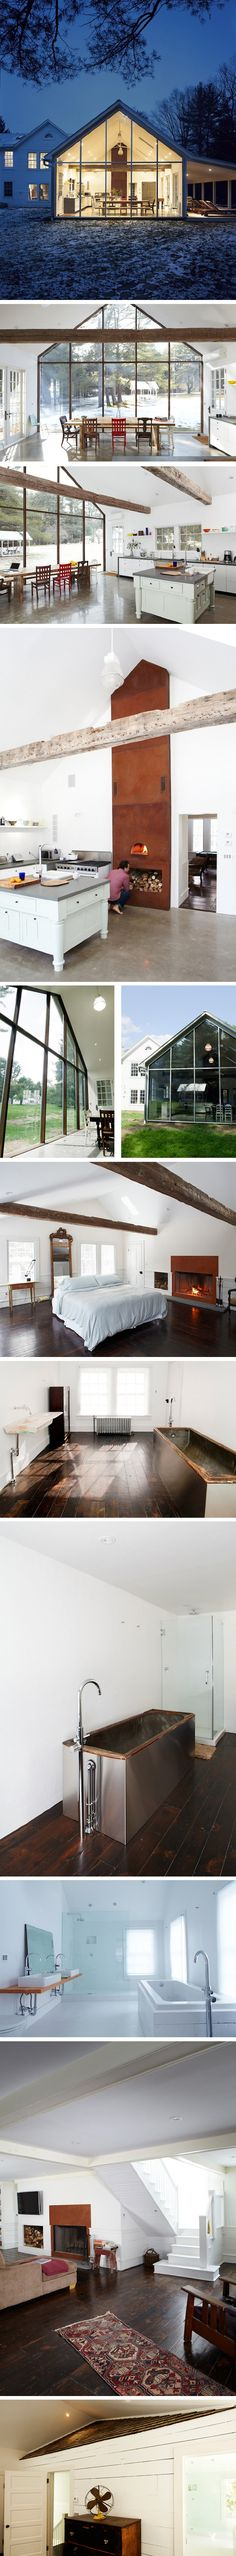 Floating-Farmhouse-Tom-Givone-2 - there's something really special and amazing about this space.